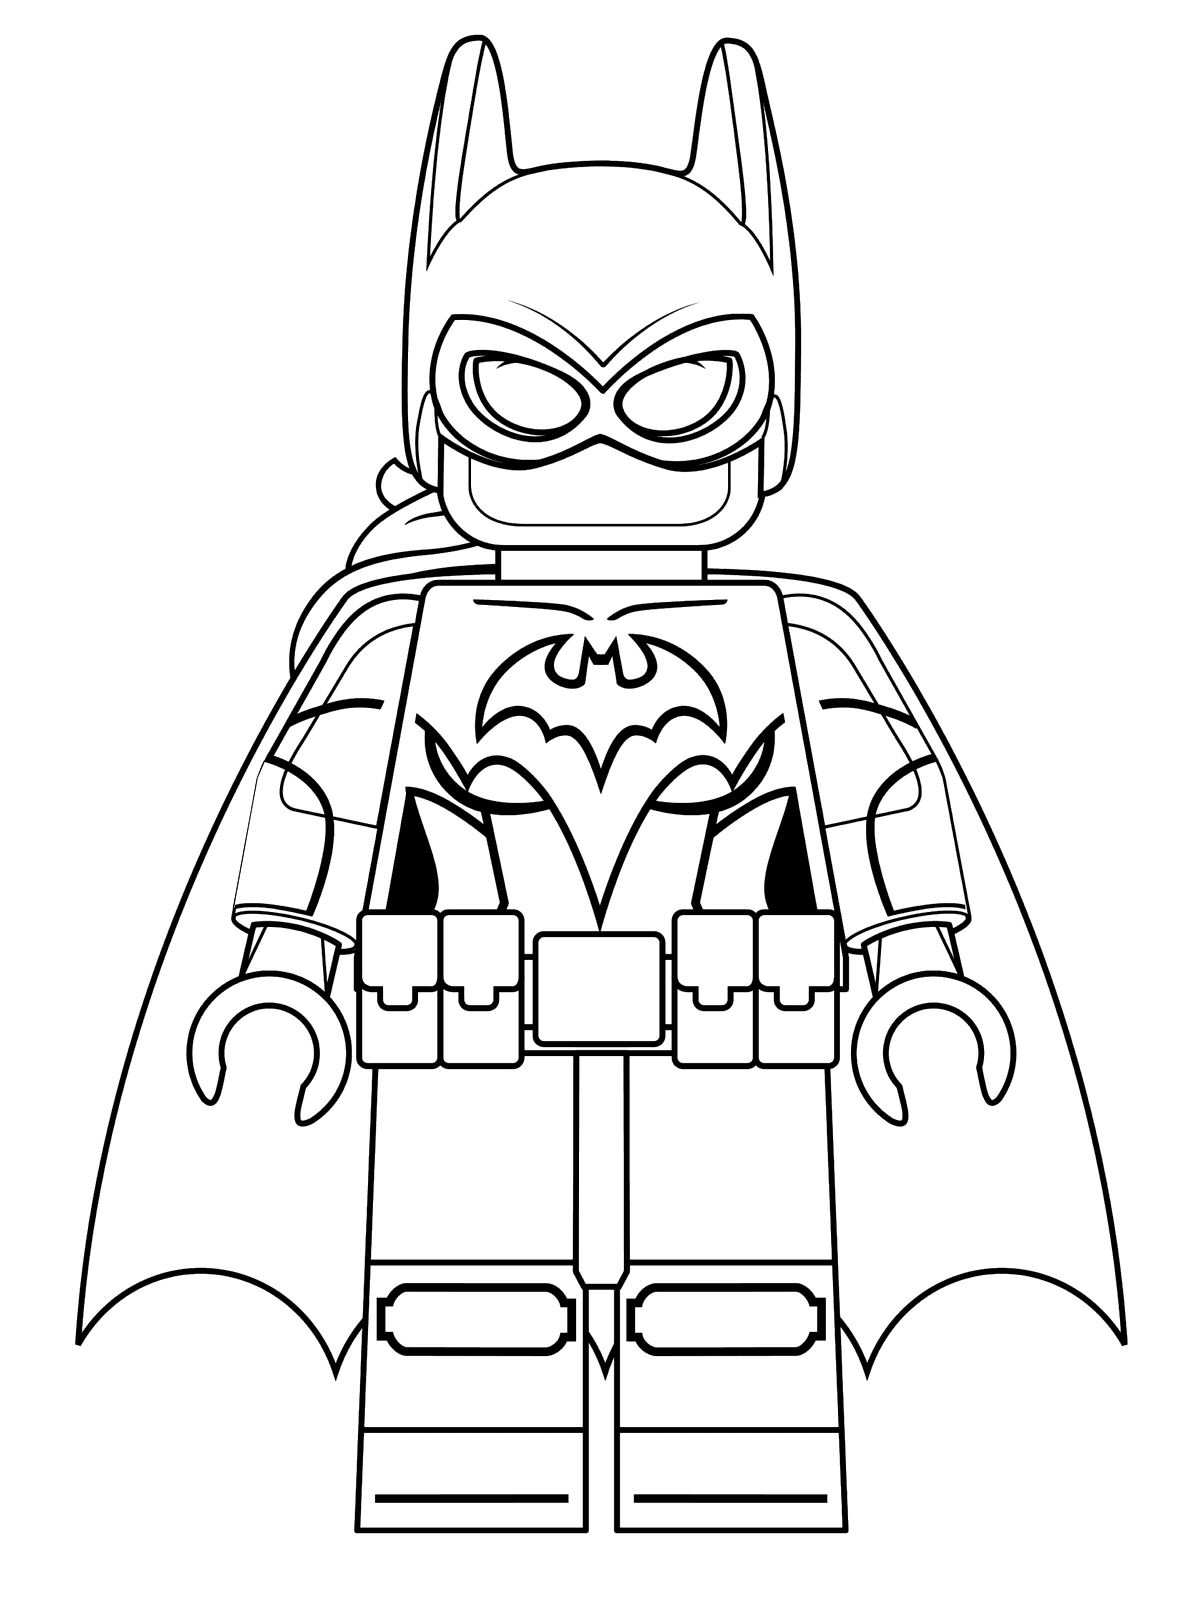 Coloring pages lego batman - Lego Batgirl